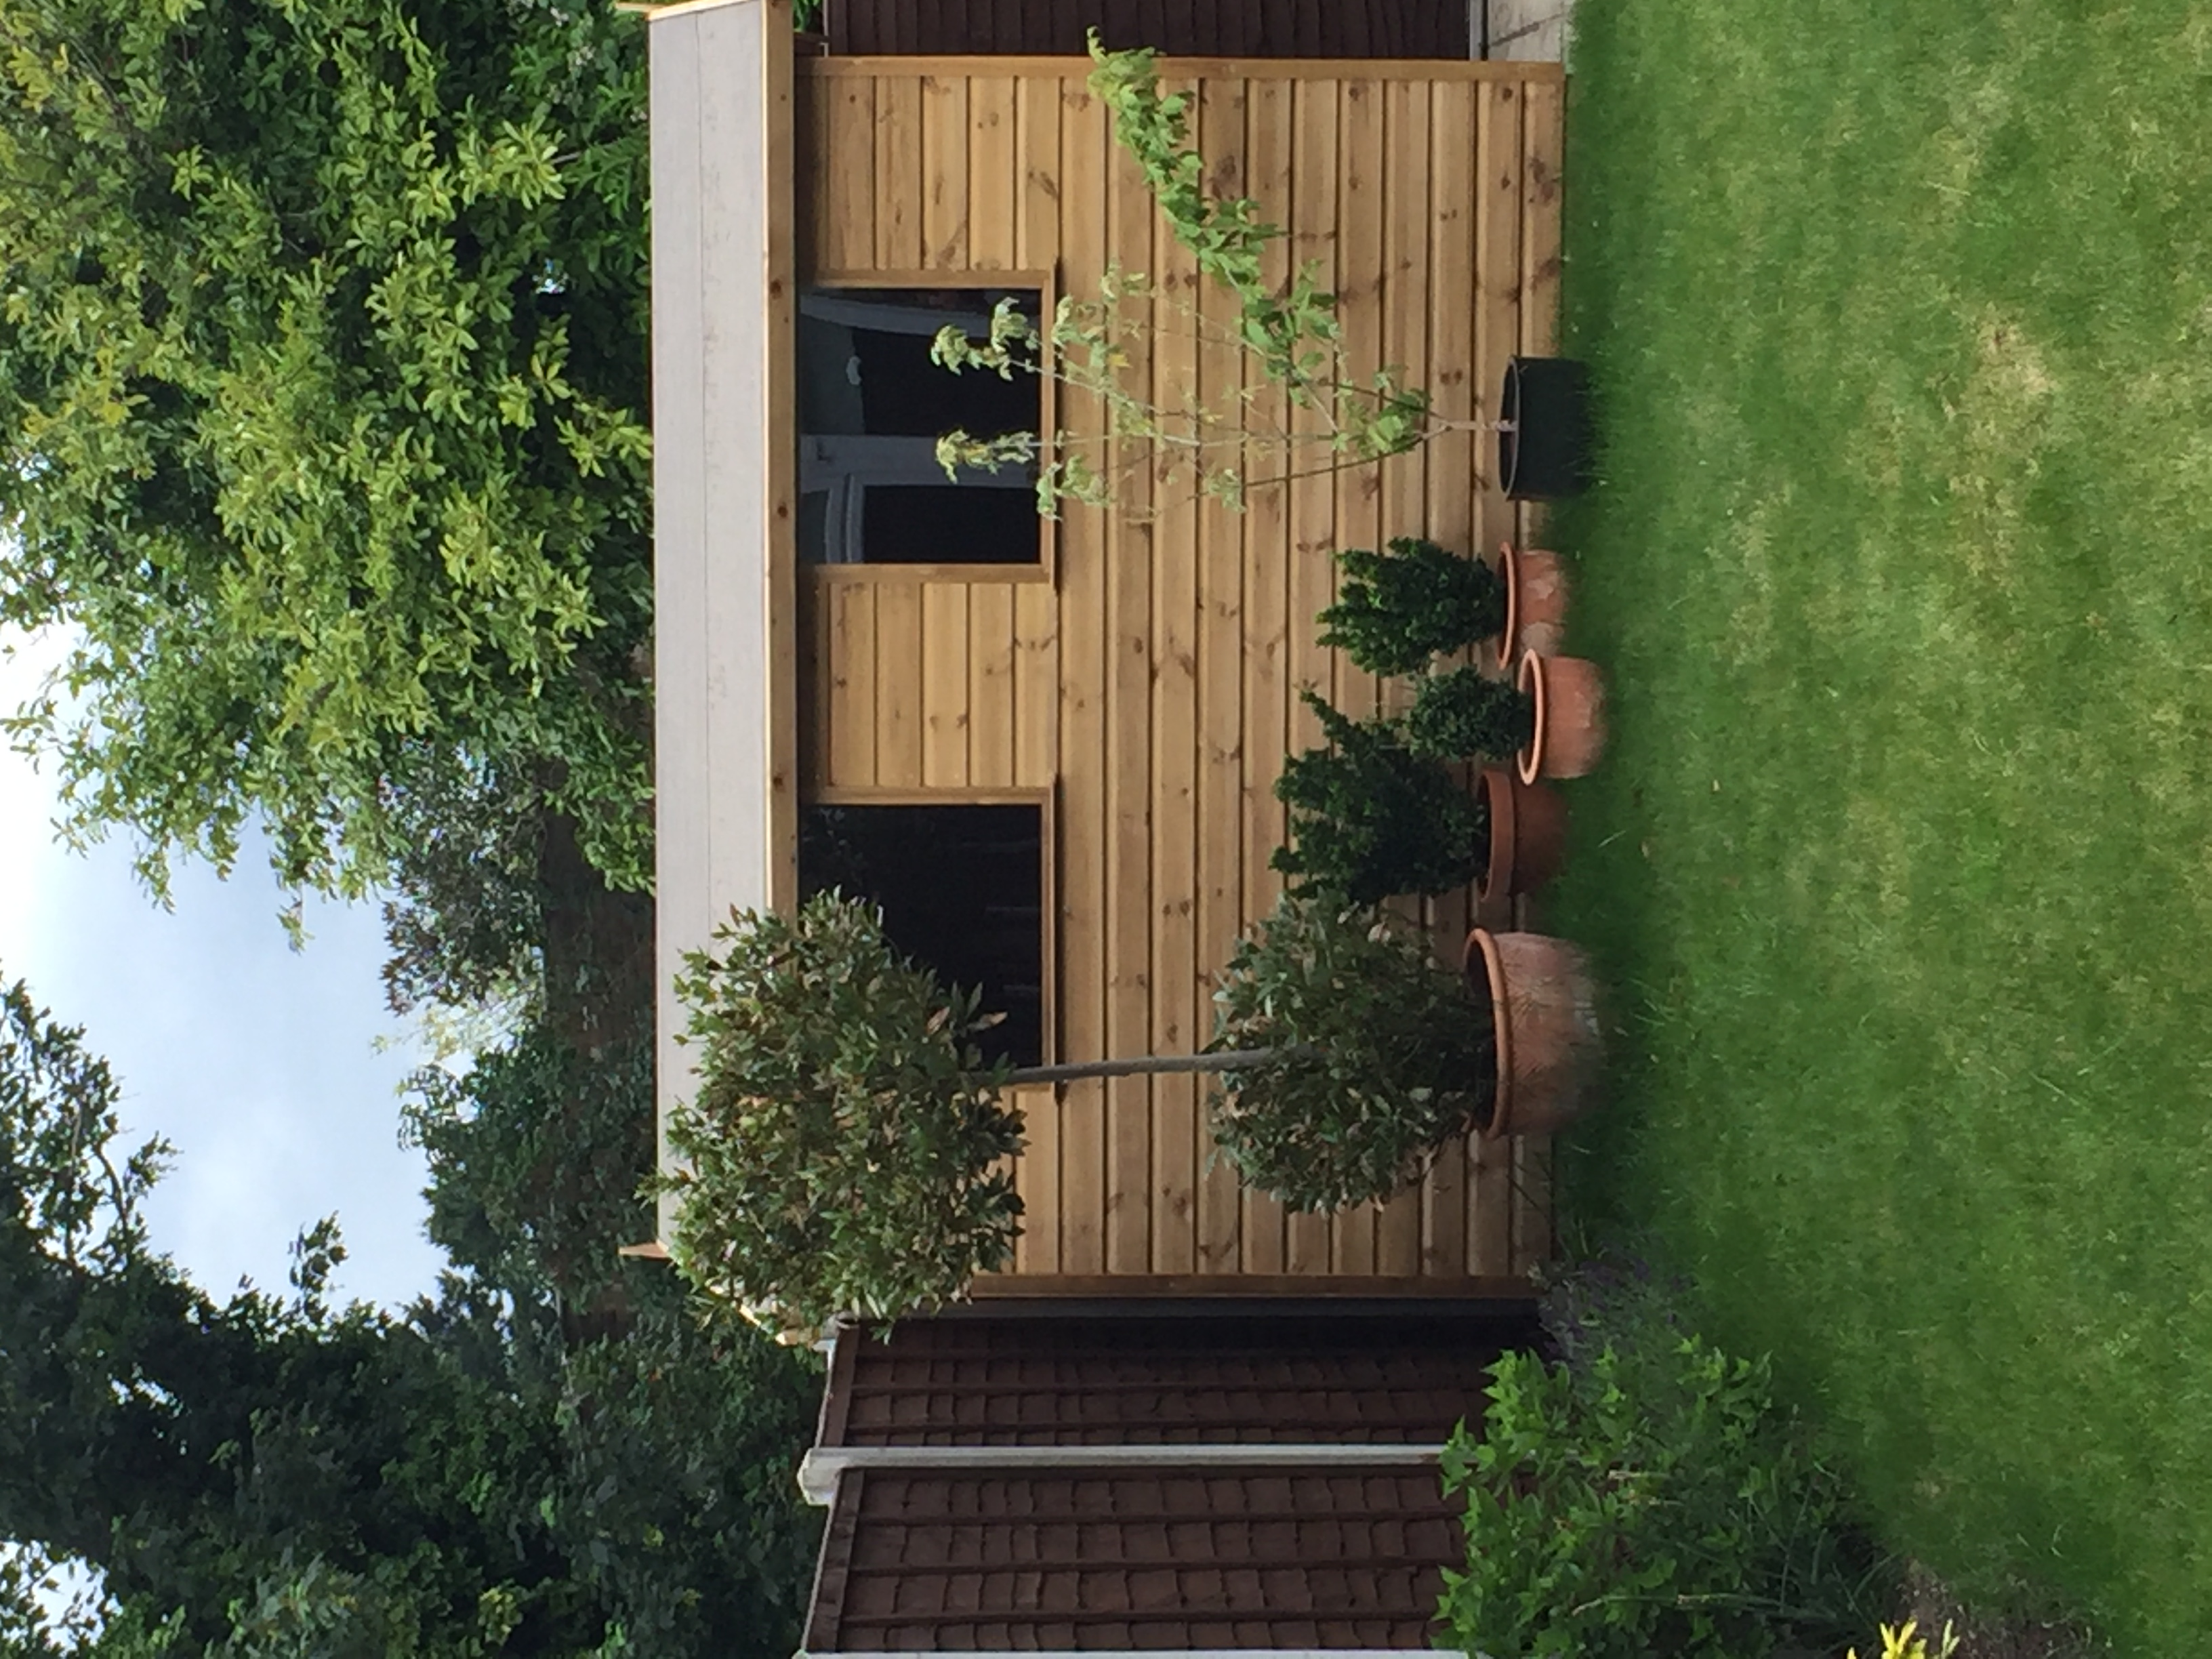 Apex garden building Potters Bar